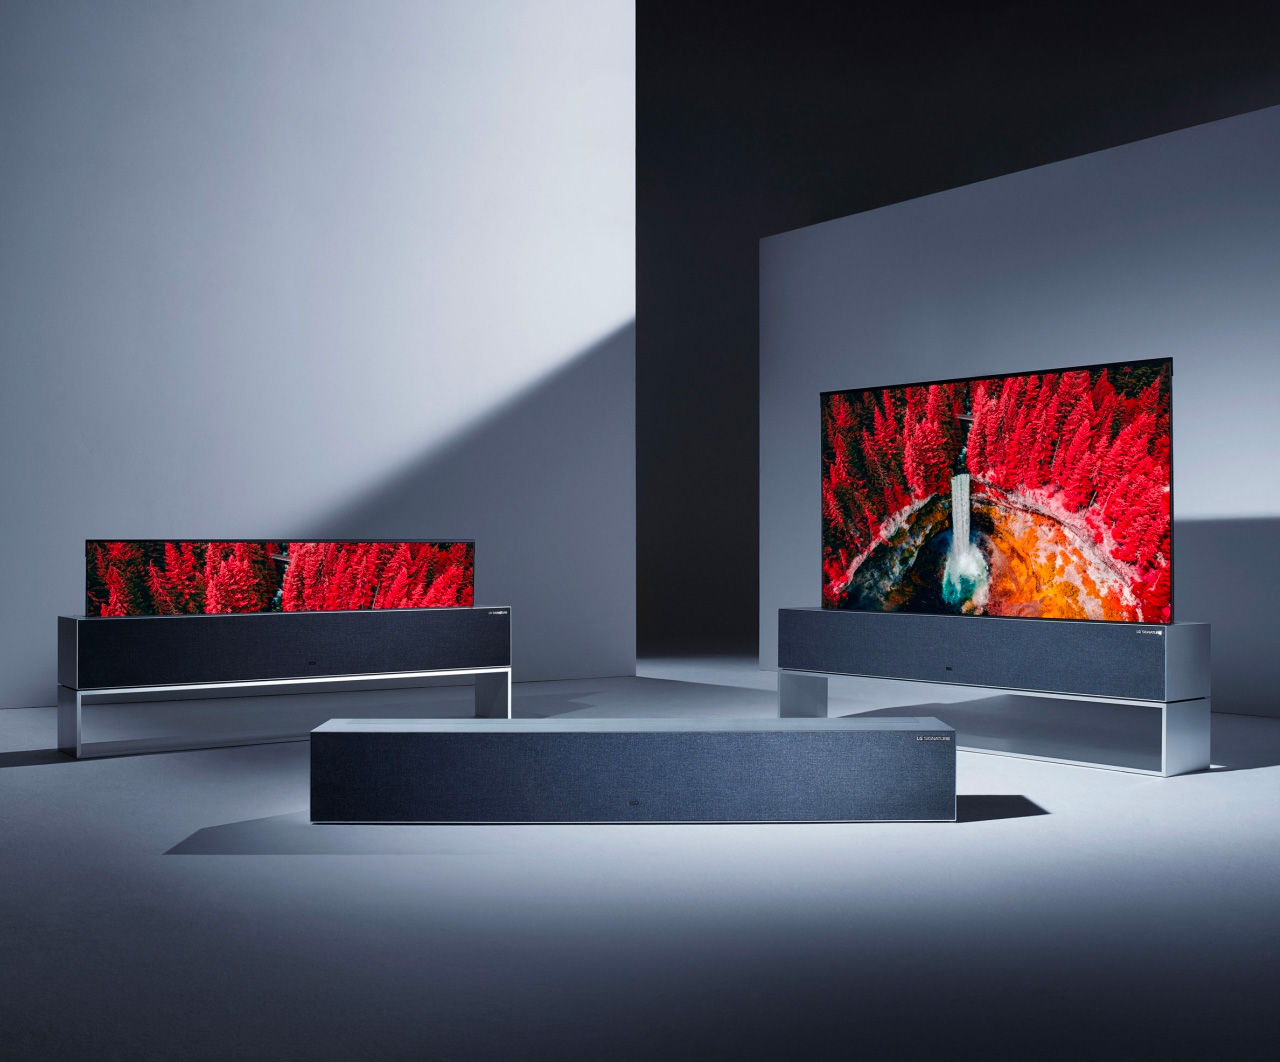 LG Introduces First-Ever Rollable OLED TV at werd.com